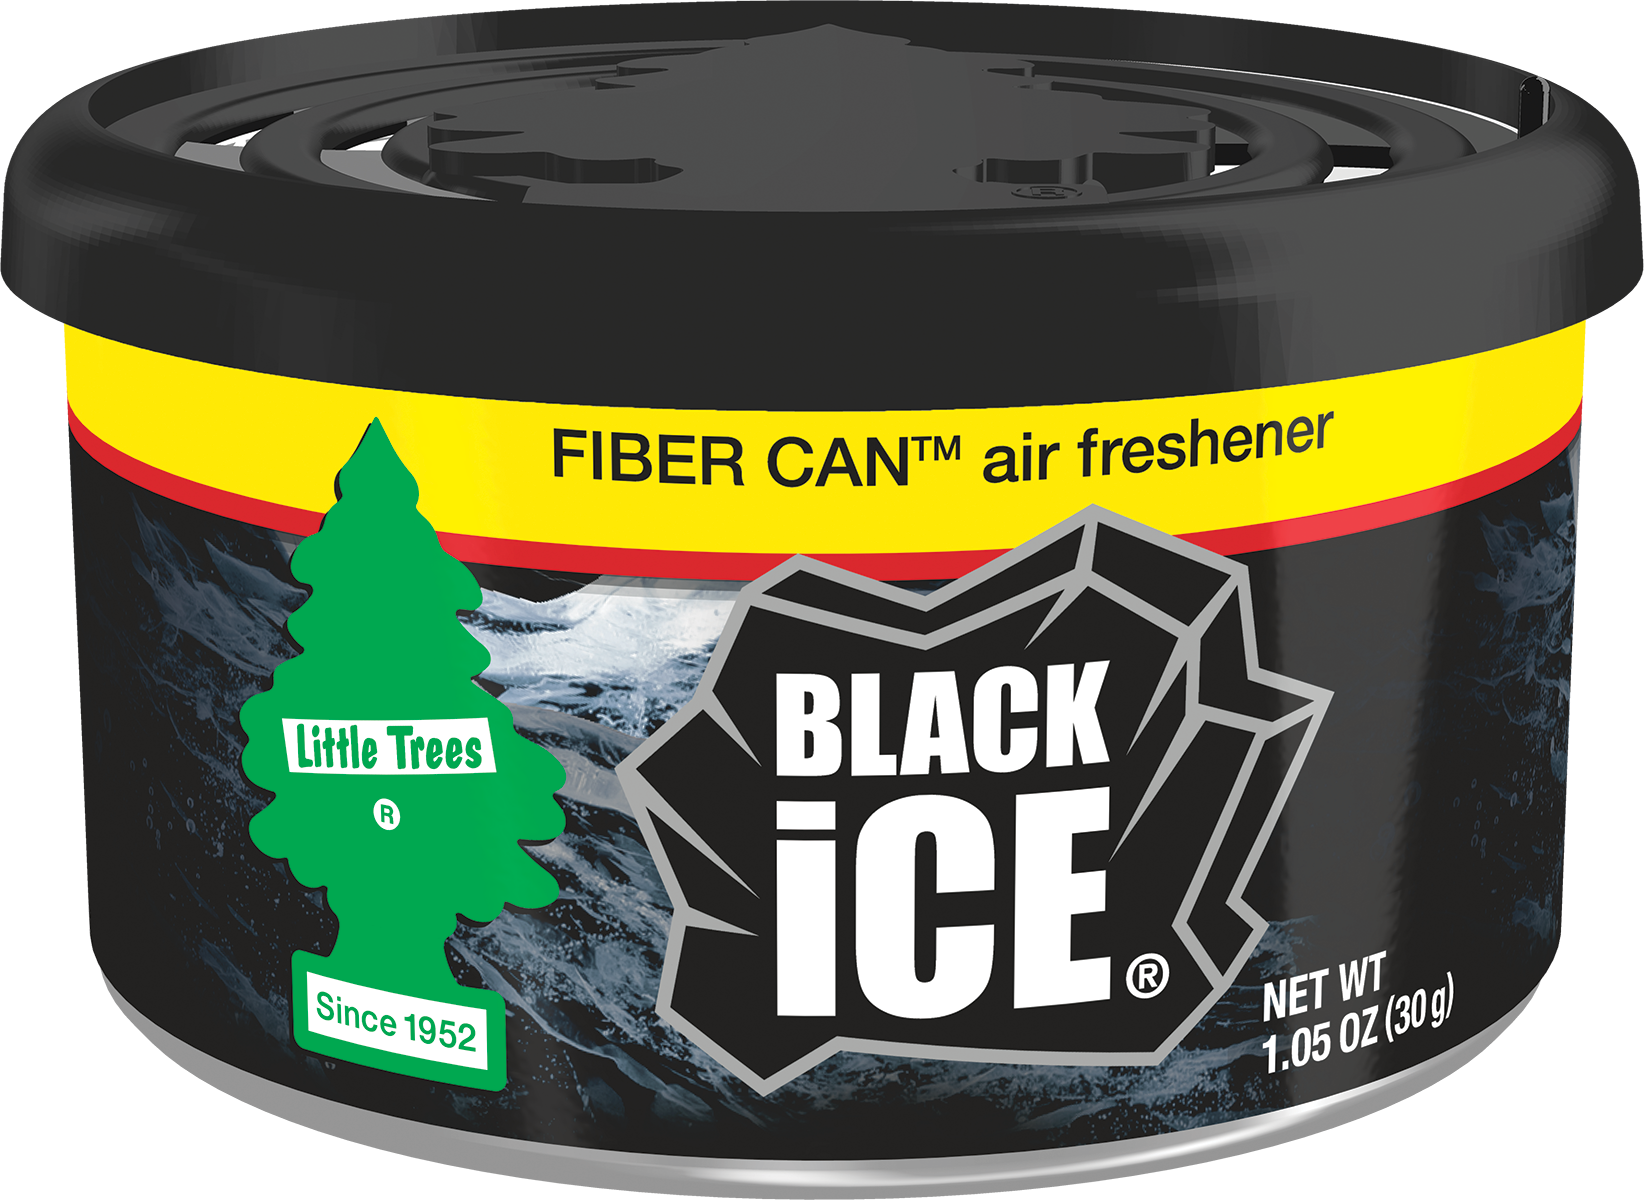 Little Trees Air Freshener Fiber Can Black Ice 1.05oz